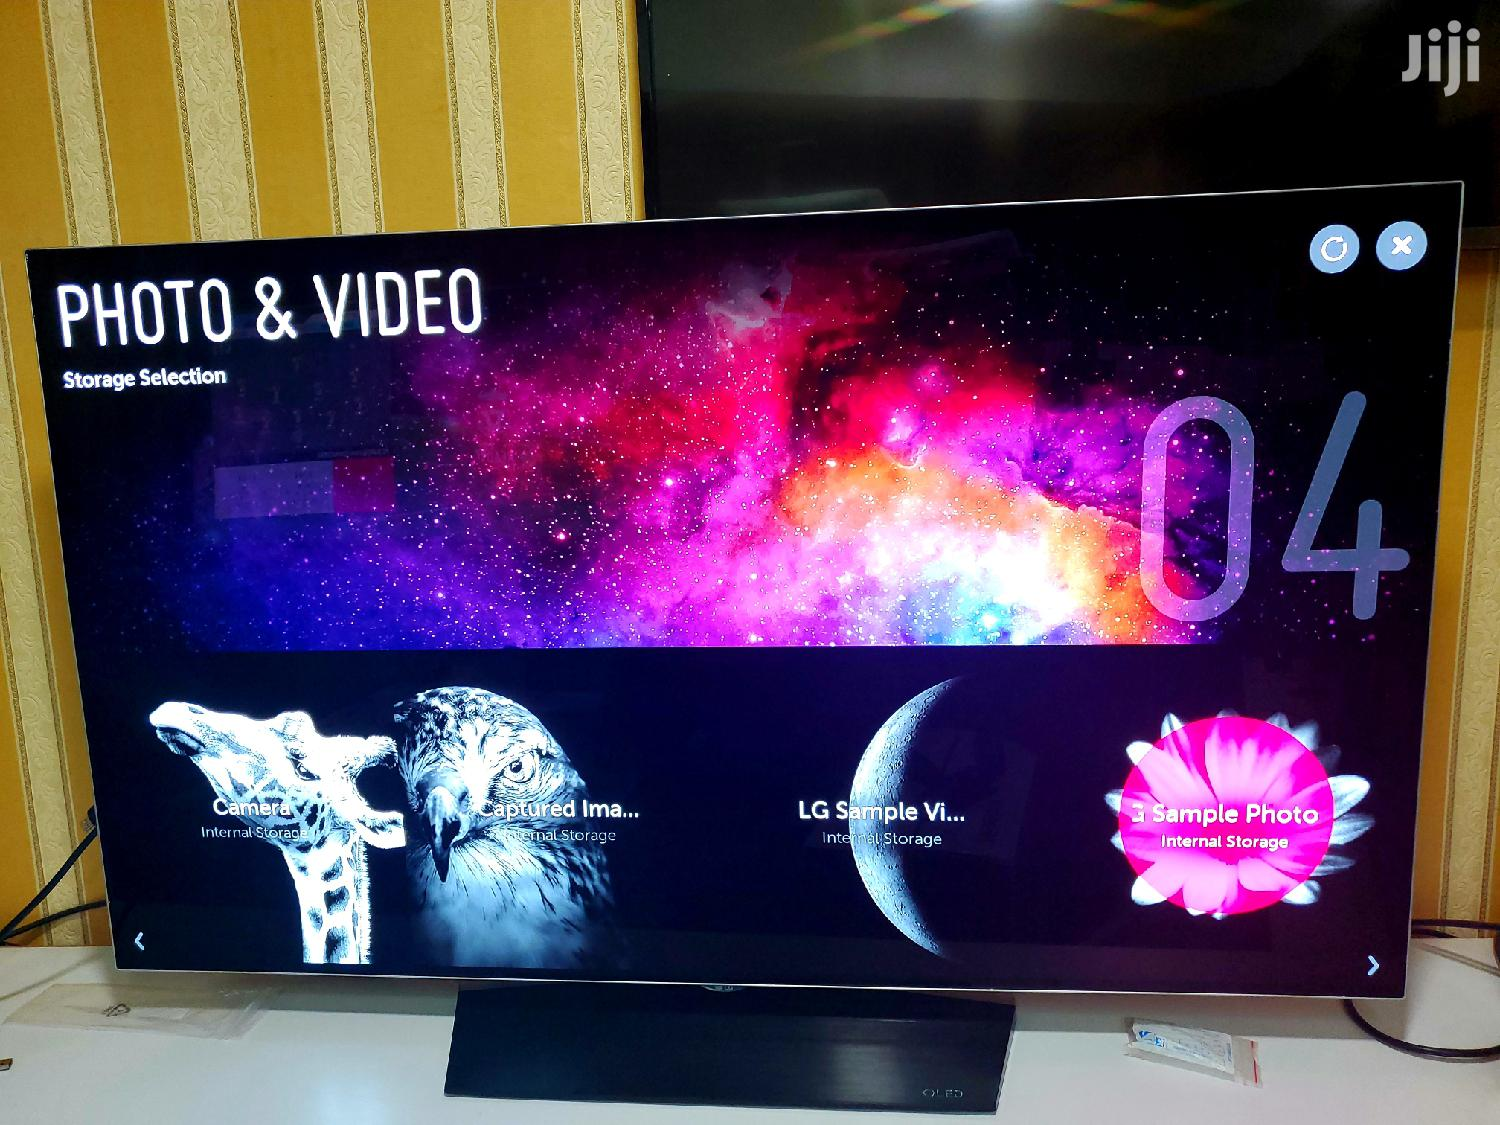 Brand New LG Oled Smart Uhd 4k Webos TV 55 Inches